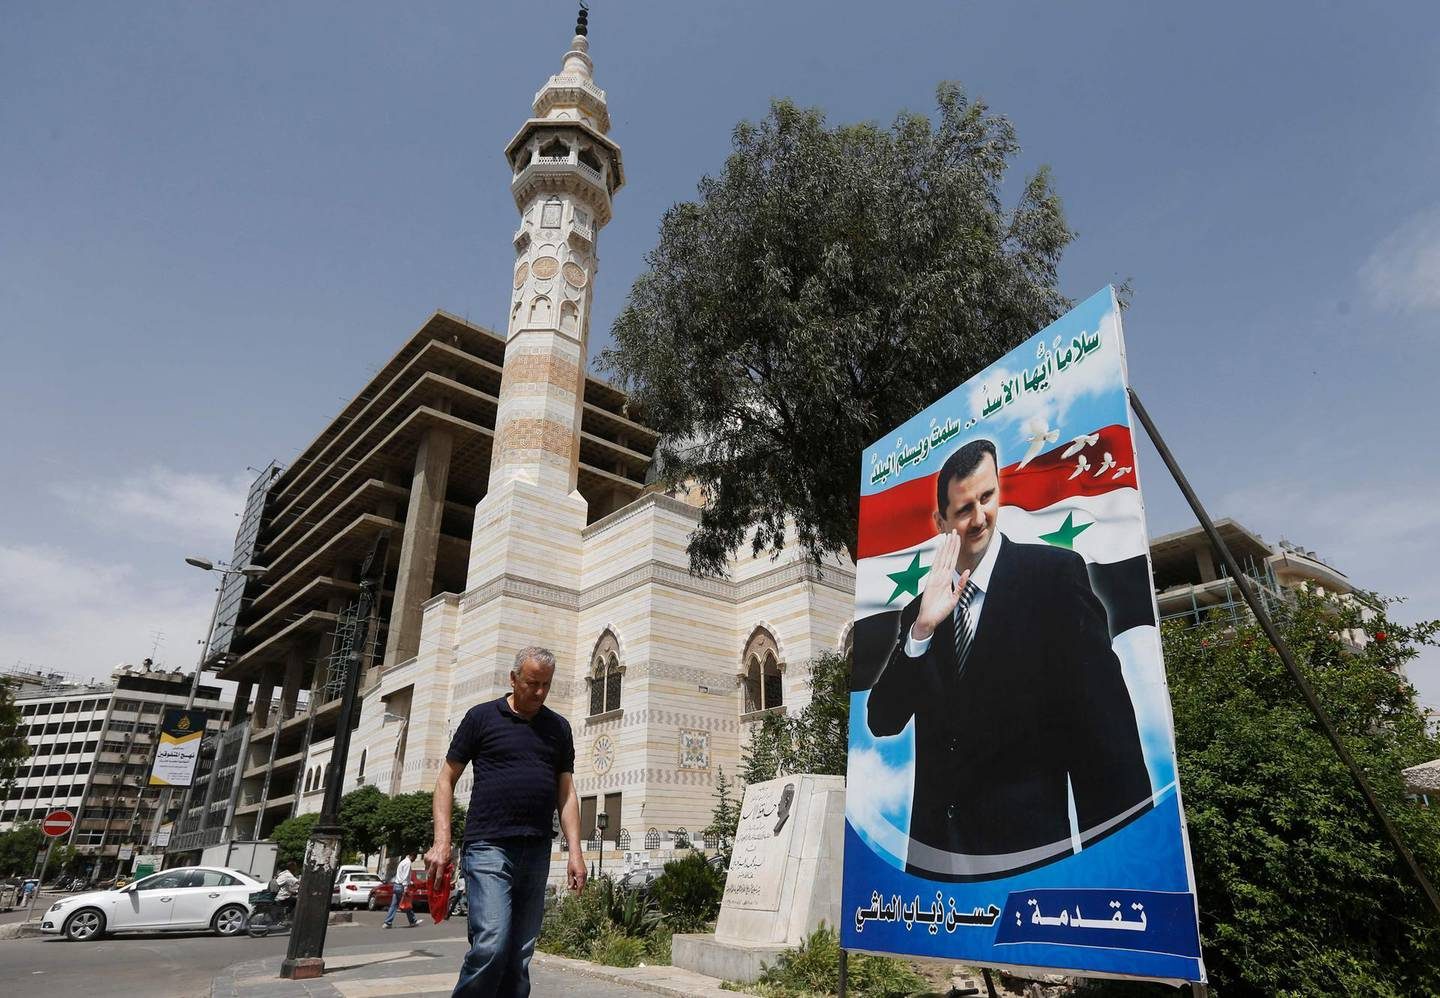 A Syria man walks past a giant portrait of President Bashar al-Assad at Marjeh square in the centre of capital Damascus on May 3, 2021. A Syrian former minister and a member of the Damascus-tolerated opposition will face Bashar al-Assad in this month's presidential election, the constitutional court said Monday. The Assad-appointed body approved only three out of 51 applications to stand in the May 26 ballot, among them the 55-year-old president himself,  / AFP / LOUAI BESHARA